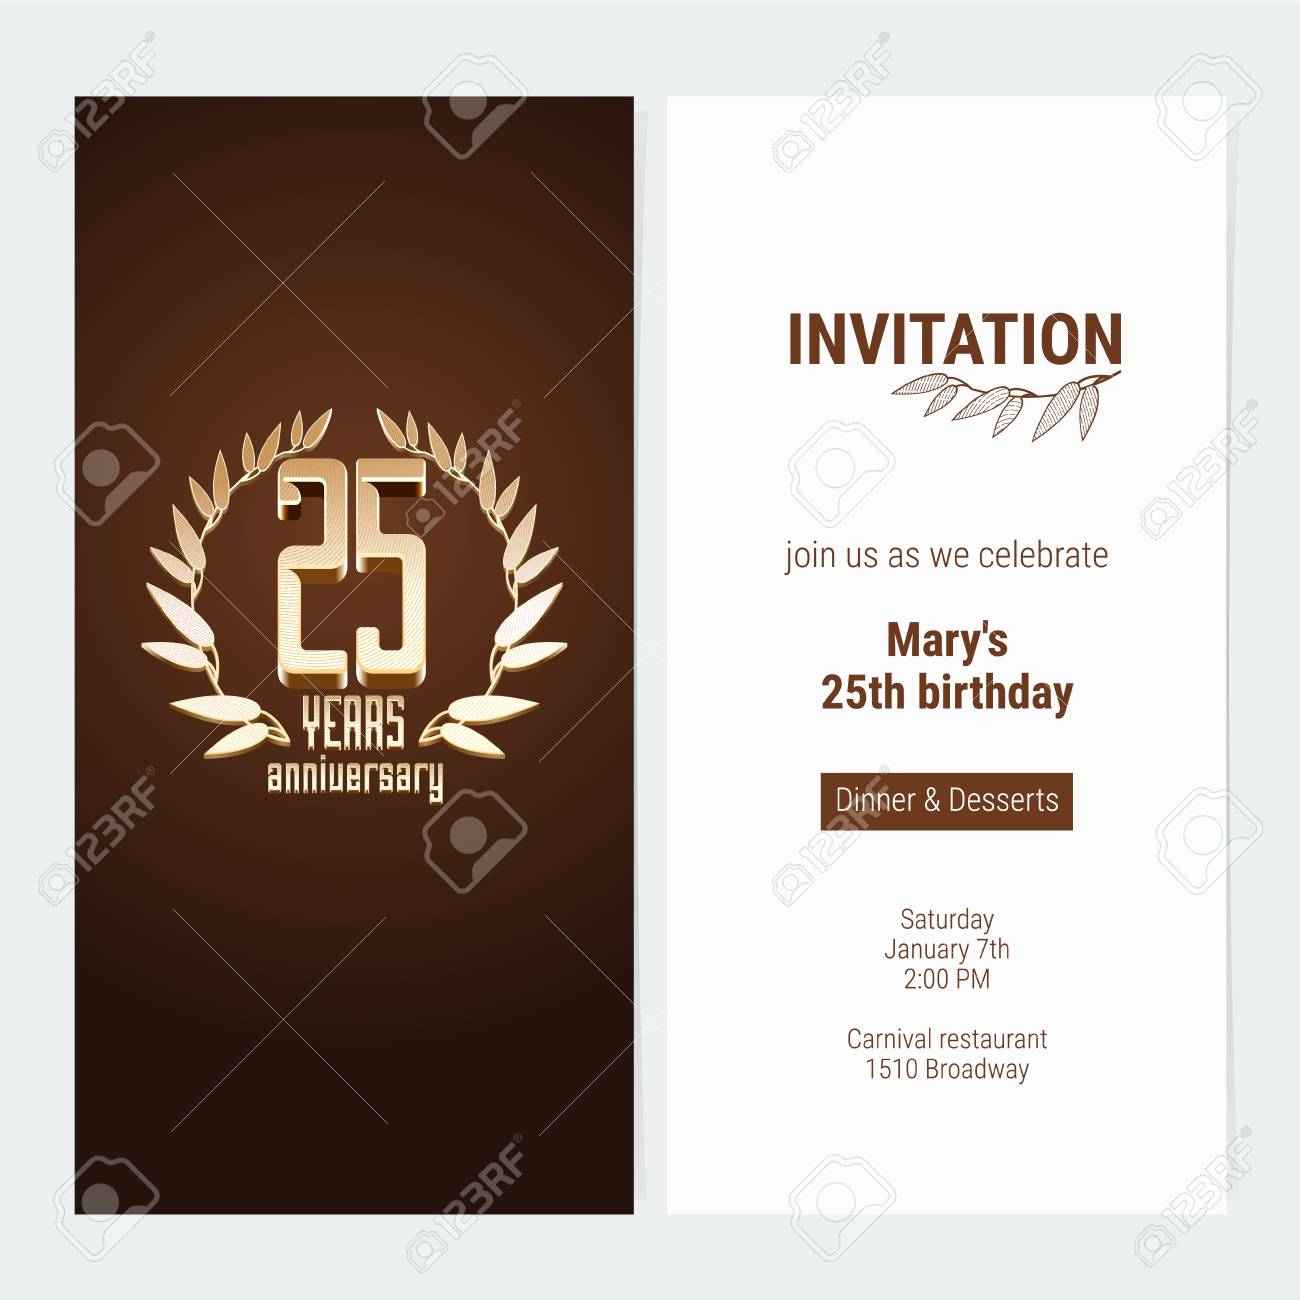 25 years anniversary invitation to celebrate the event vector